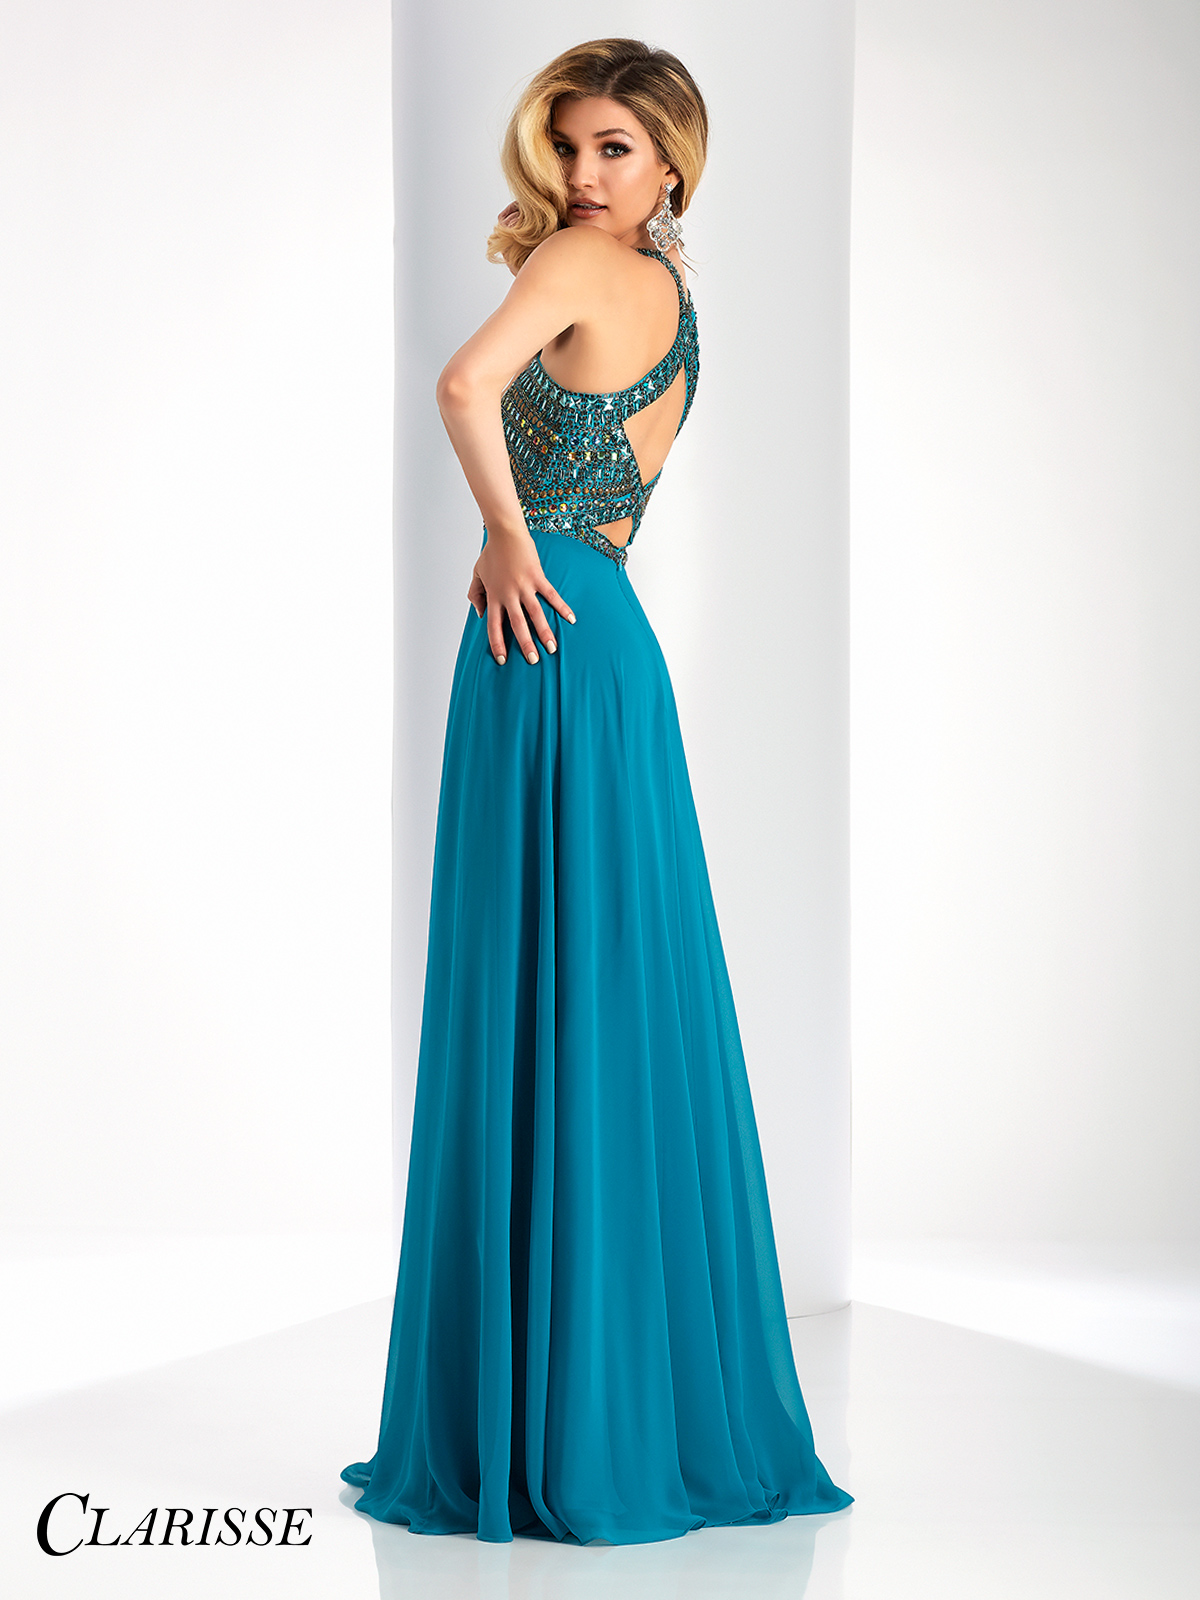 Clarisse Prom Dress 3066 | Promgirl.net